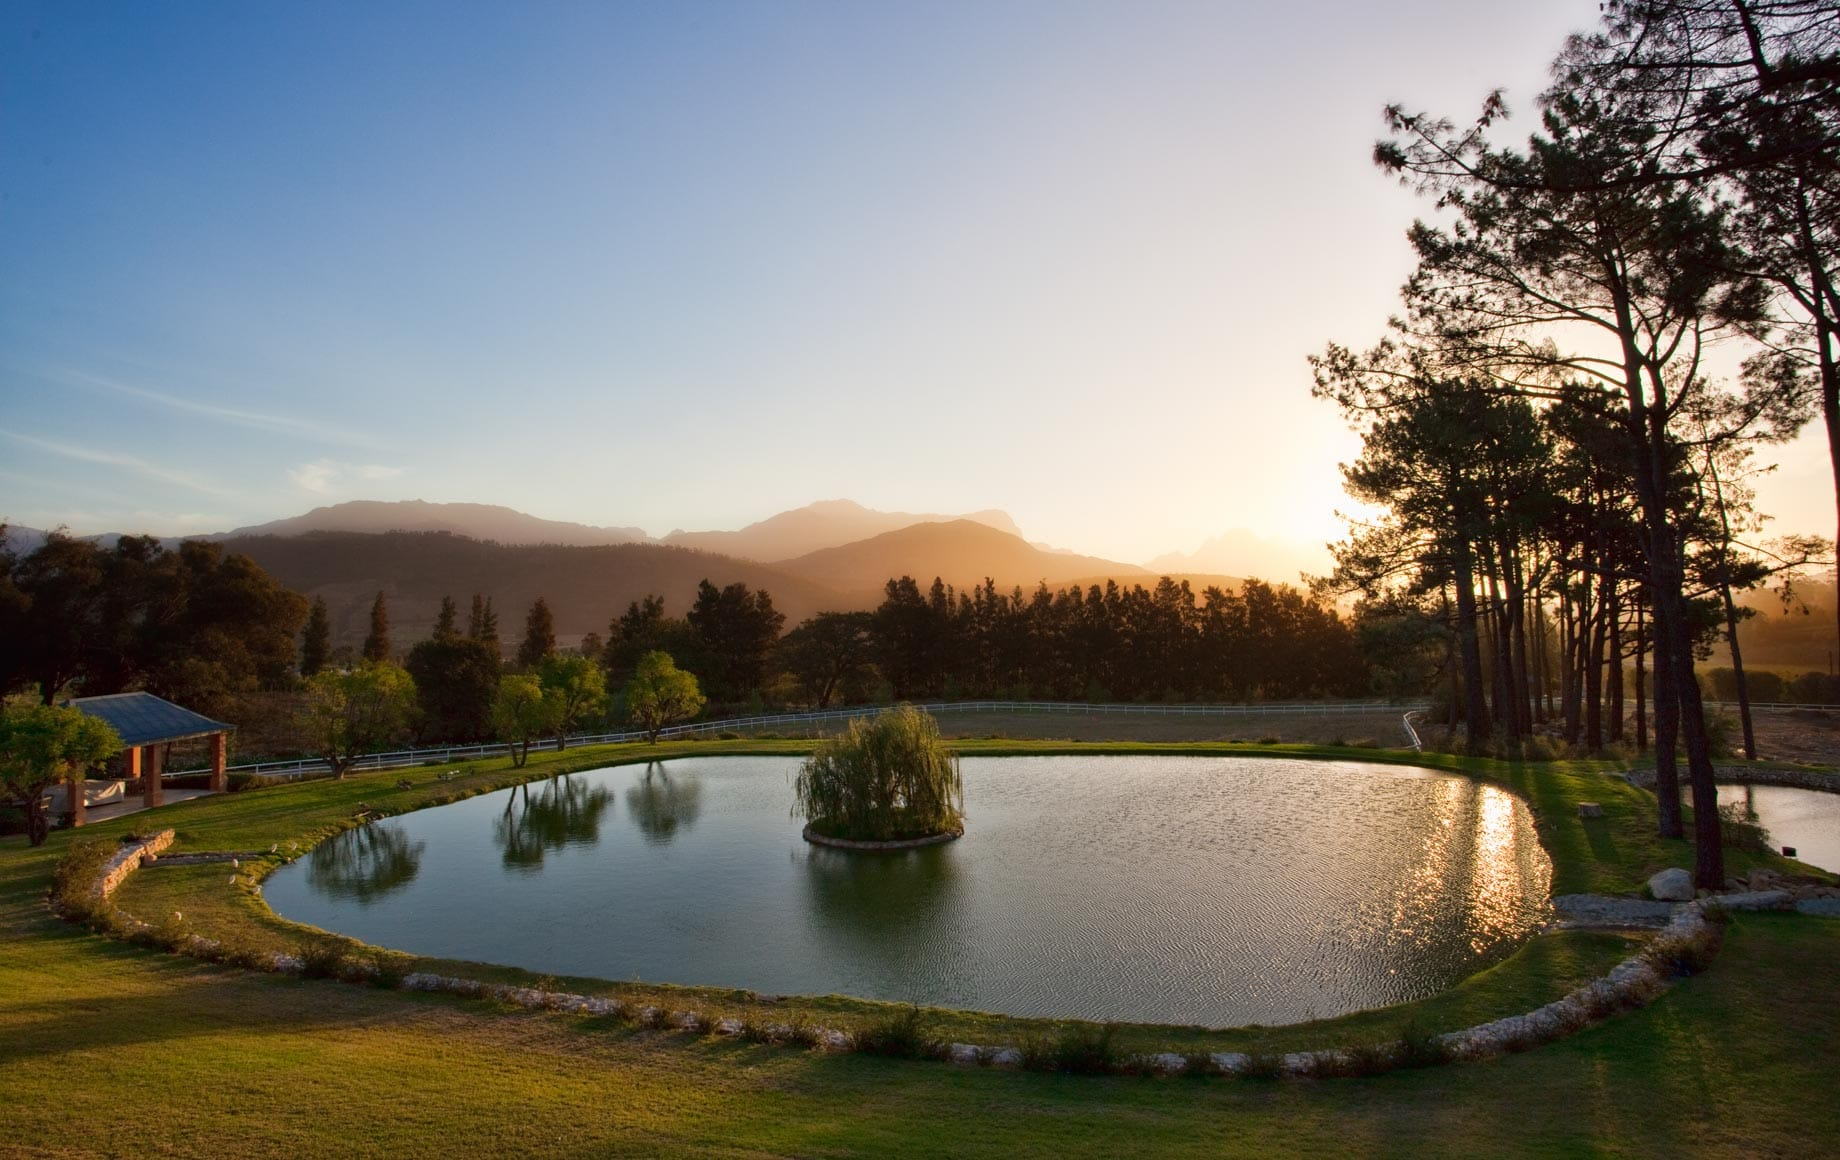 Peaceful pond and natural scenes in Cape Winelands